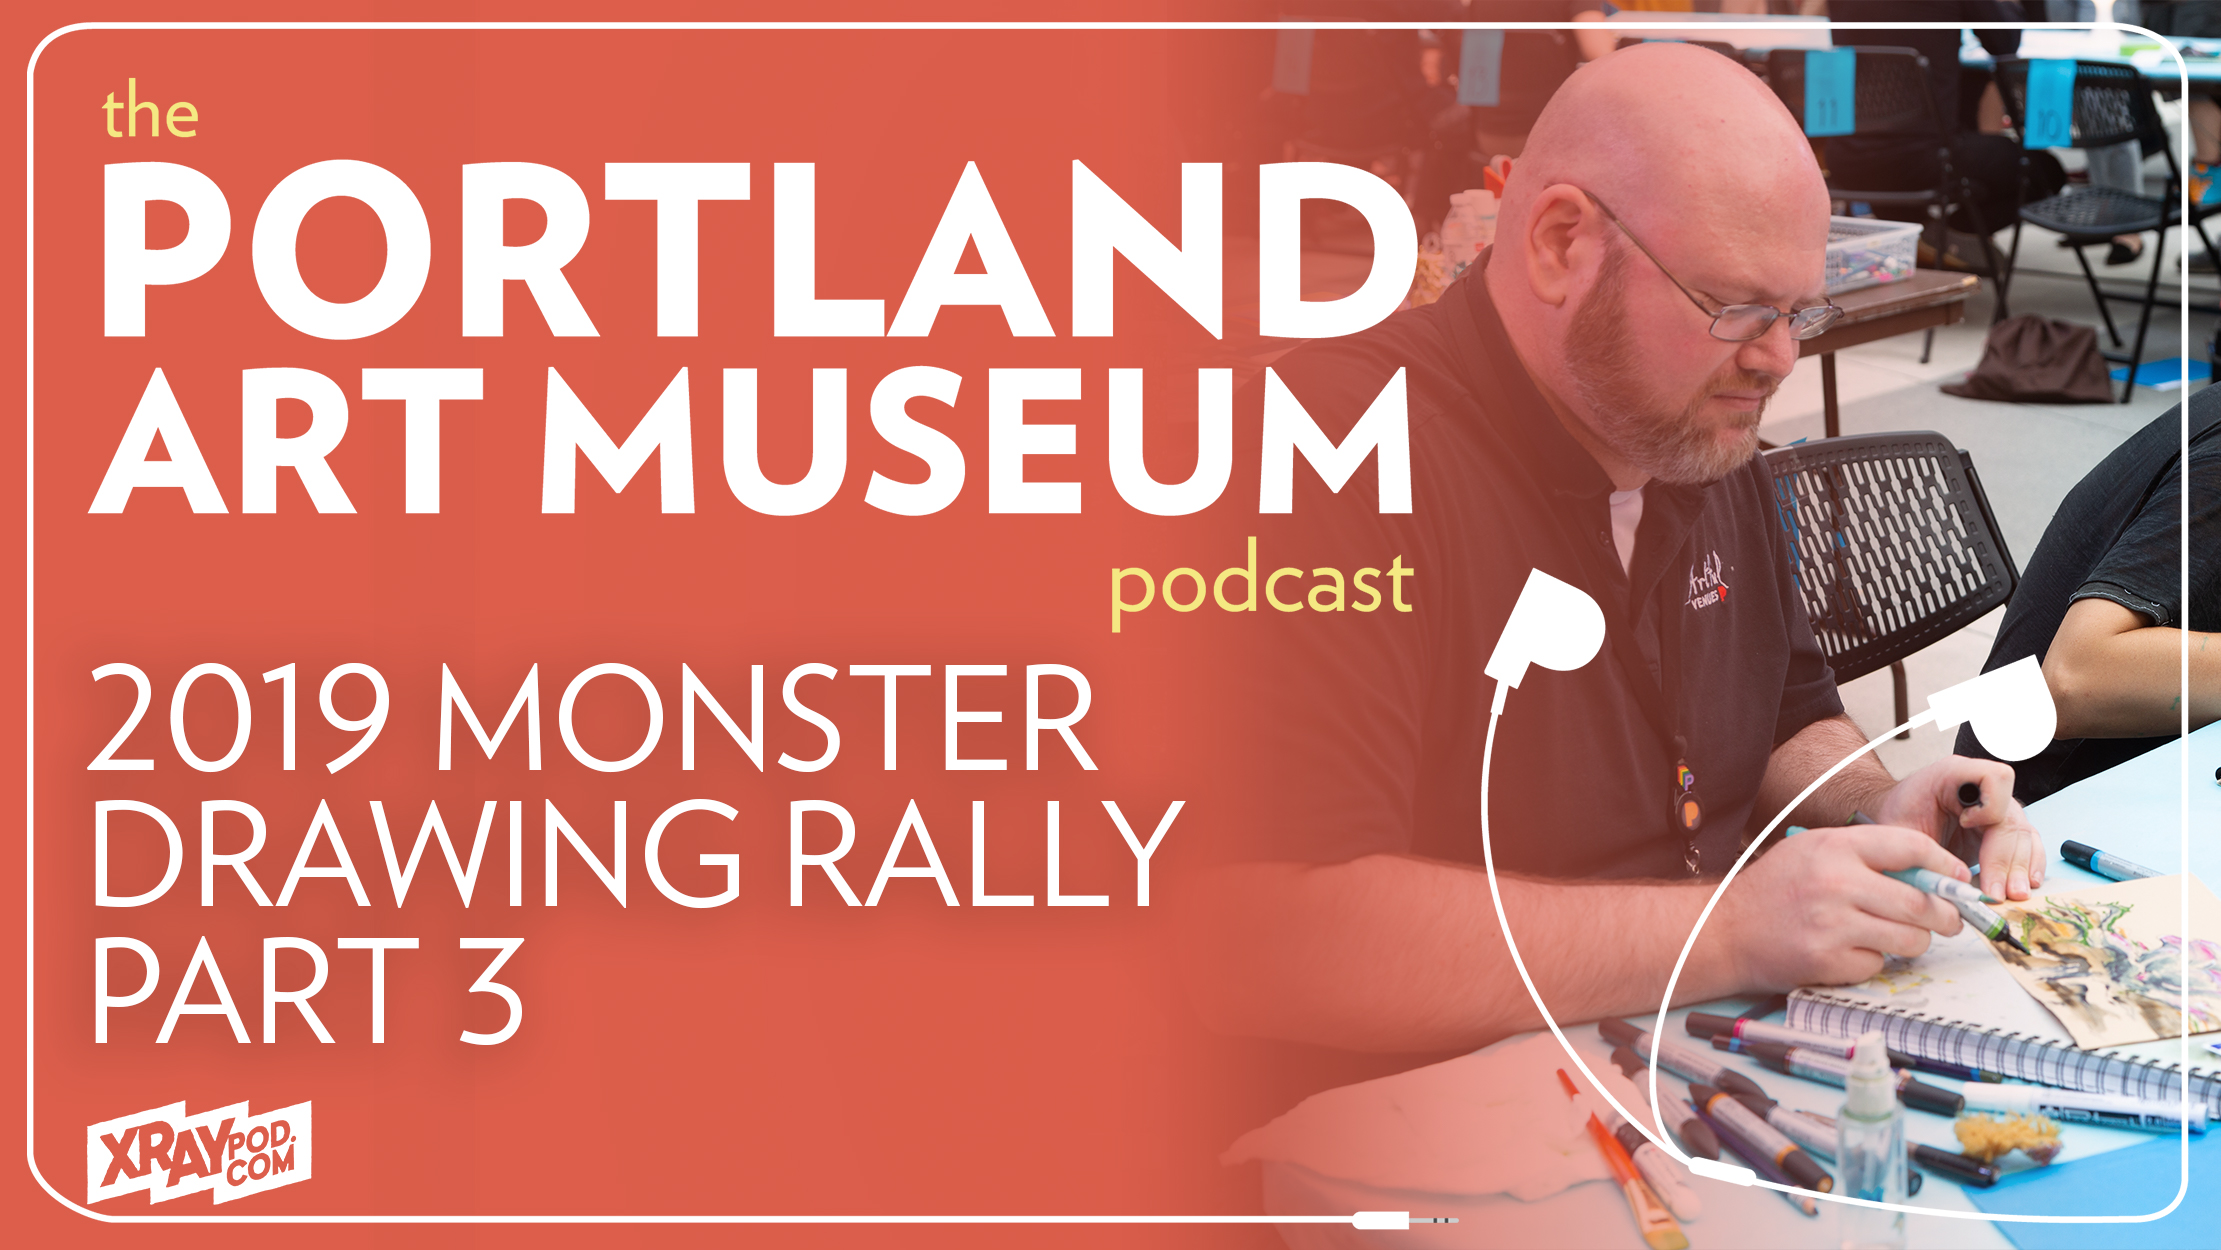 The Portland Art Museum Podcast | Listen Free on Castbox